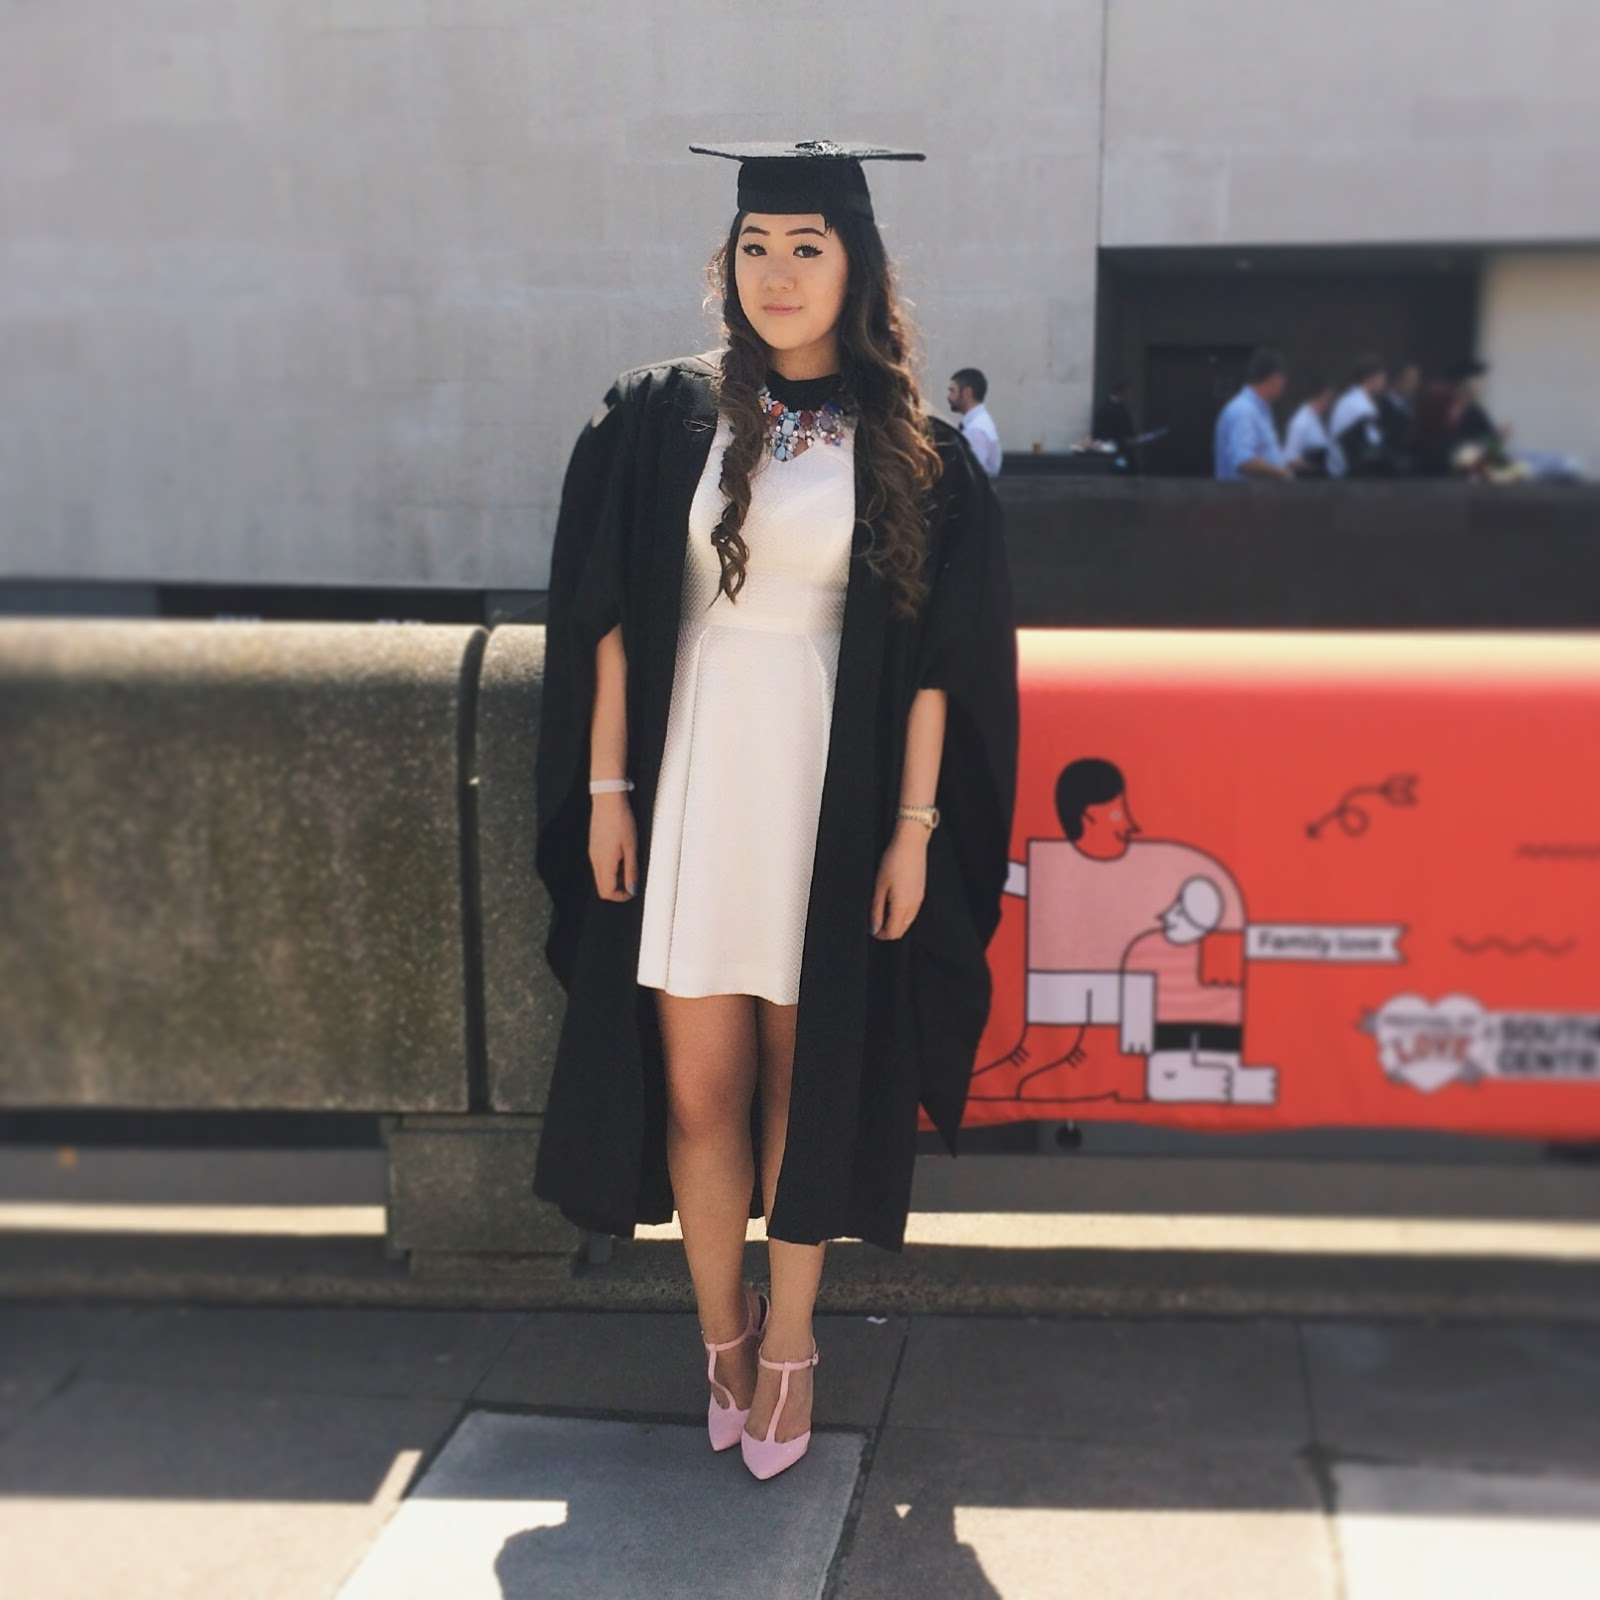 The Jade Aesthetic, Jade Fung, Liverpool fashion blog, Liverpool style blog, Asian style blog, graduation outfit for girls, graduation dress ideas, white dress graduation